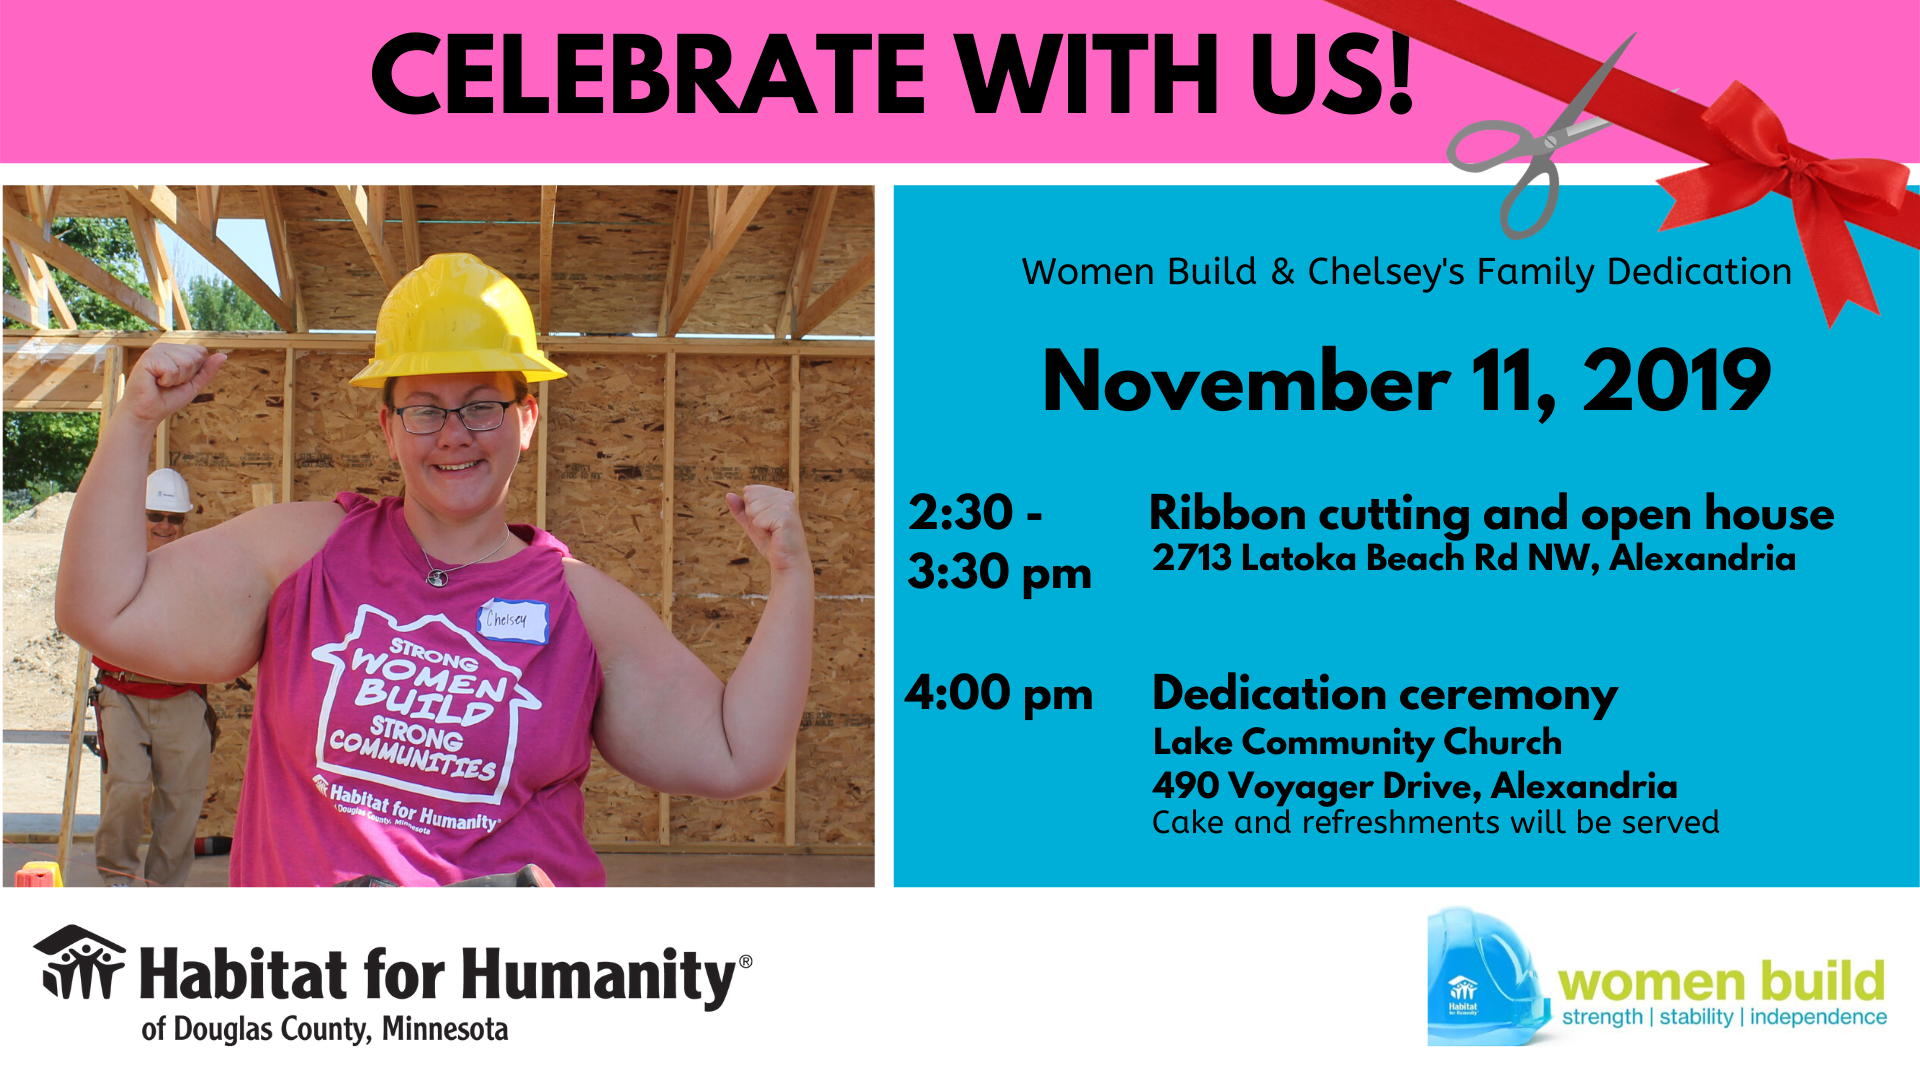 Women Build Dedication for Chelsey's home - Nov 11, 2019